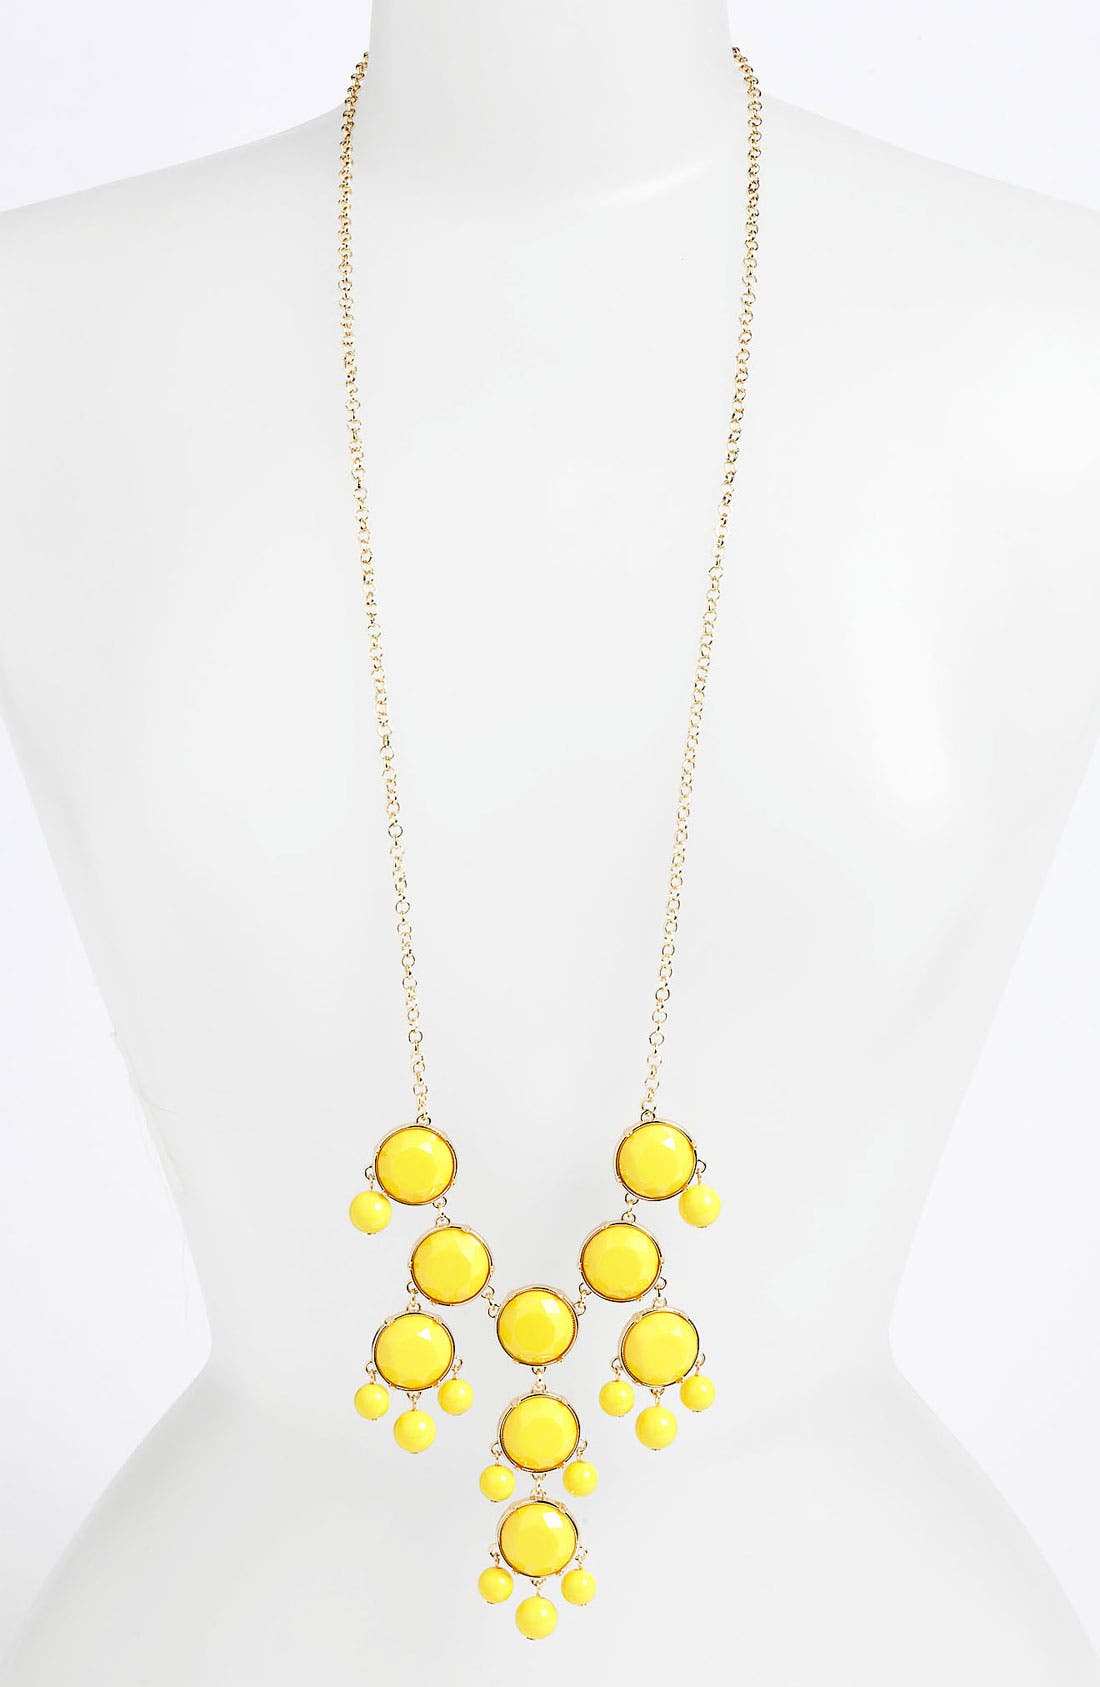 Alternate Image 1 Selected - BP. Sunburst Statement Necklace